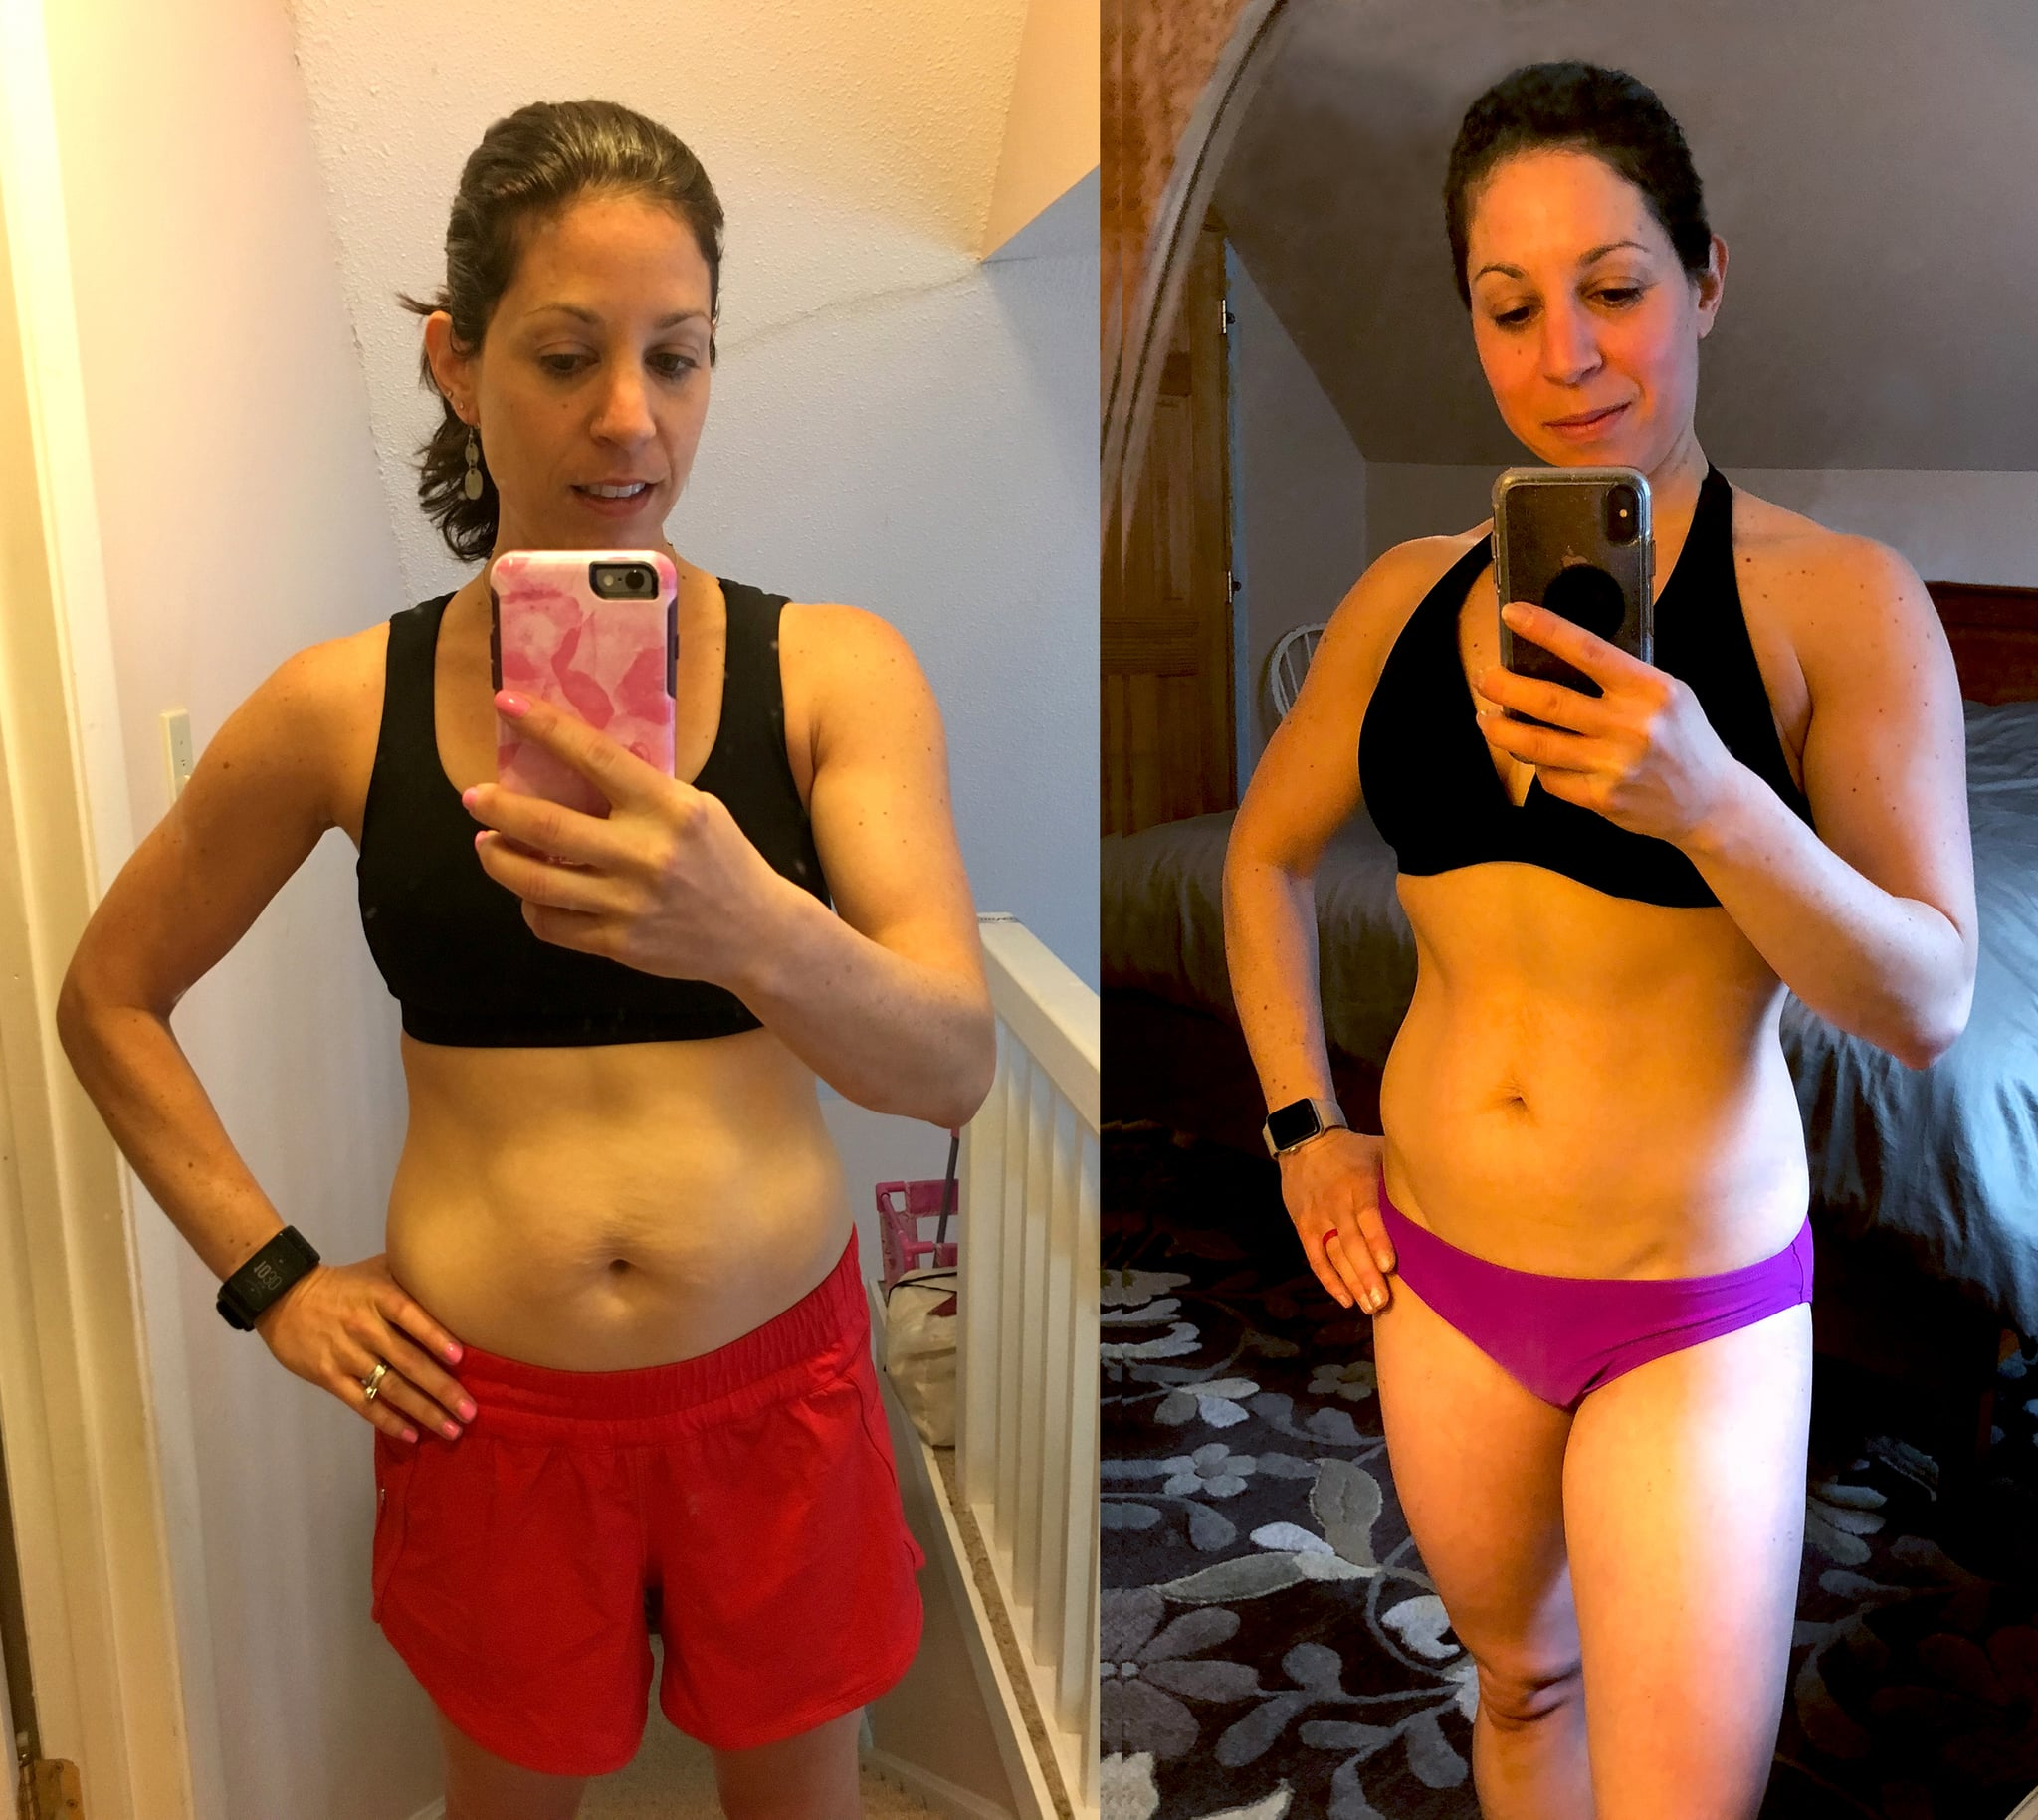 Will intermittent fasting help me lose belly fat popsugar fitness a little belly and have always felt self conscious i exercise regularly and eat healthy but came to accept that this is how my body is meant to look ccuart